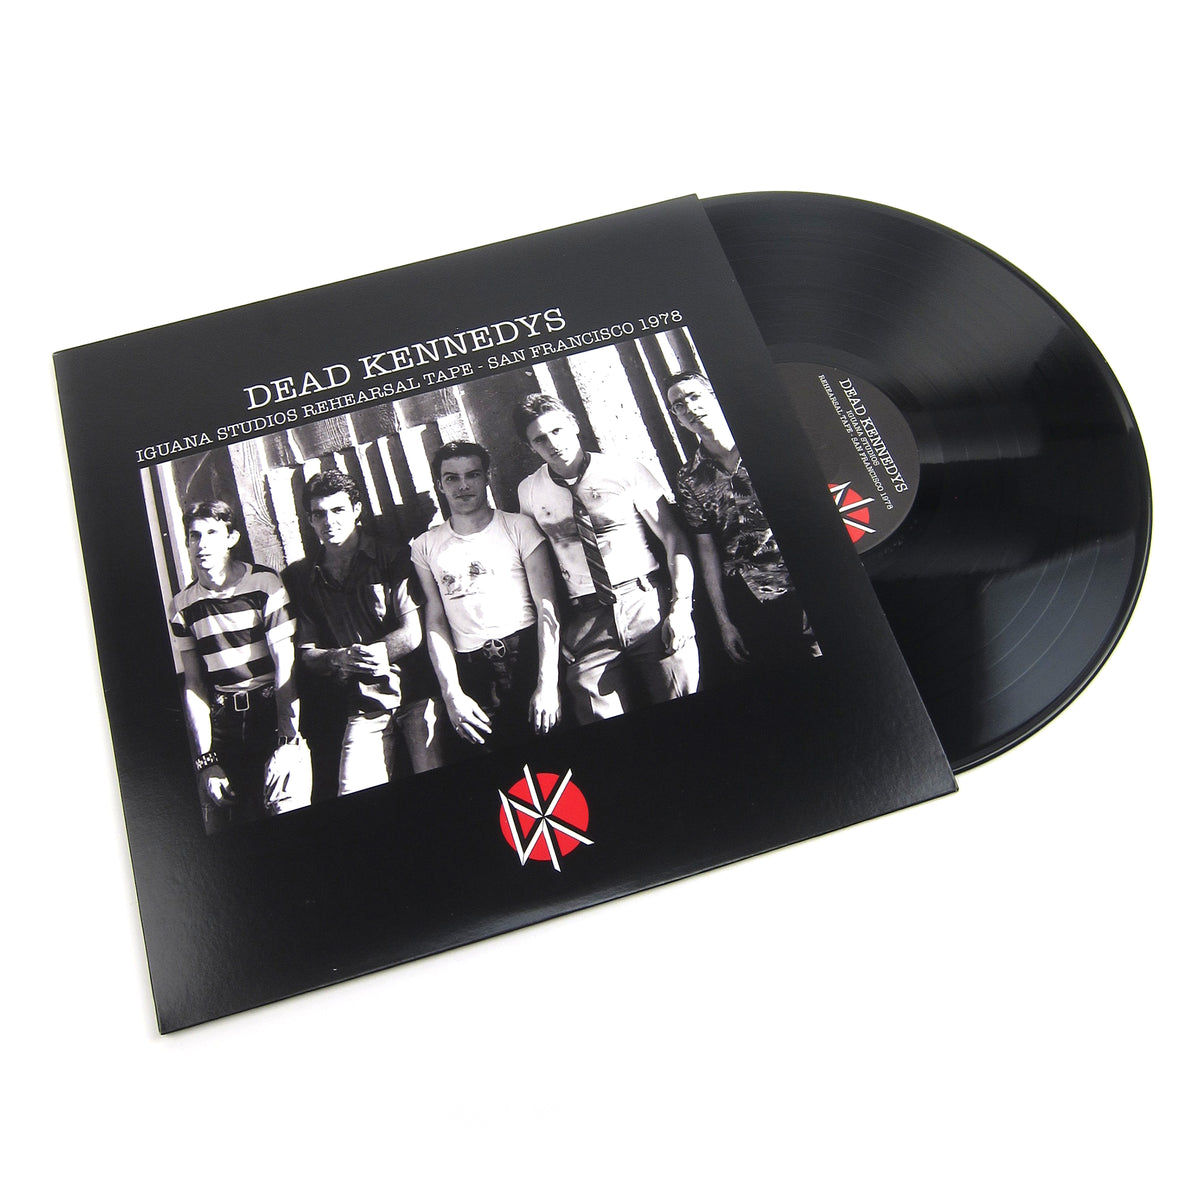 Dead Kennedys: Iguana Studios Rehearsal Sessions Vinyl LP (Record Store Day)